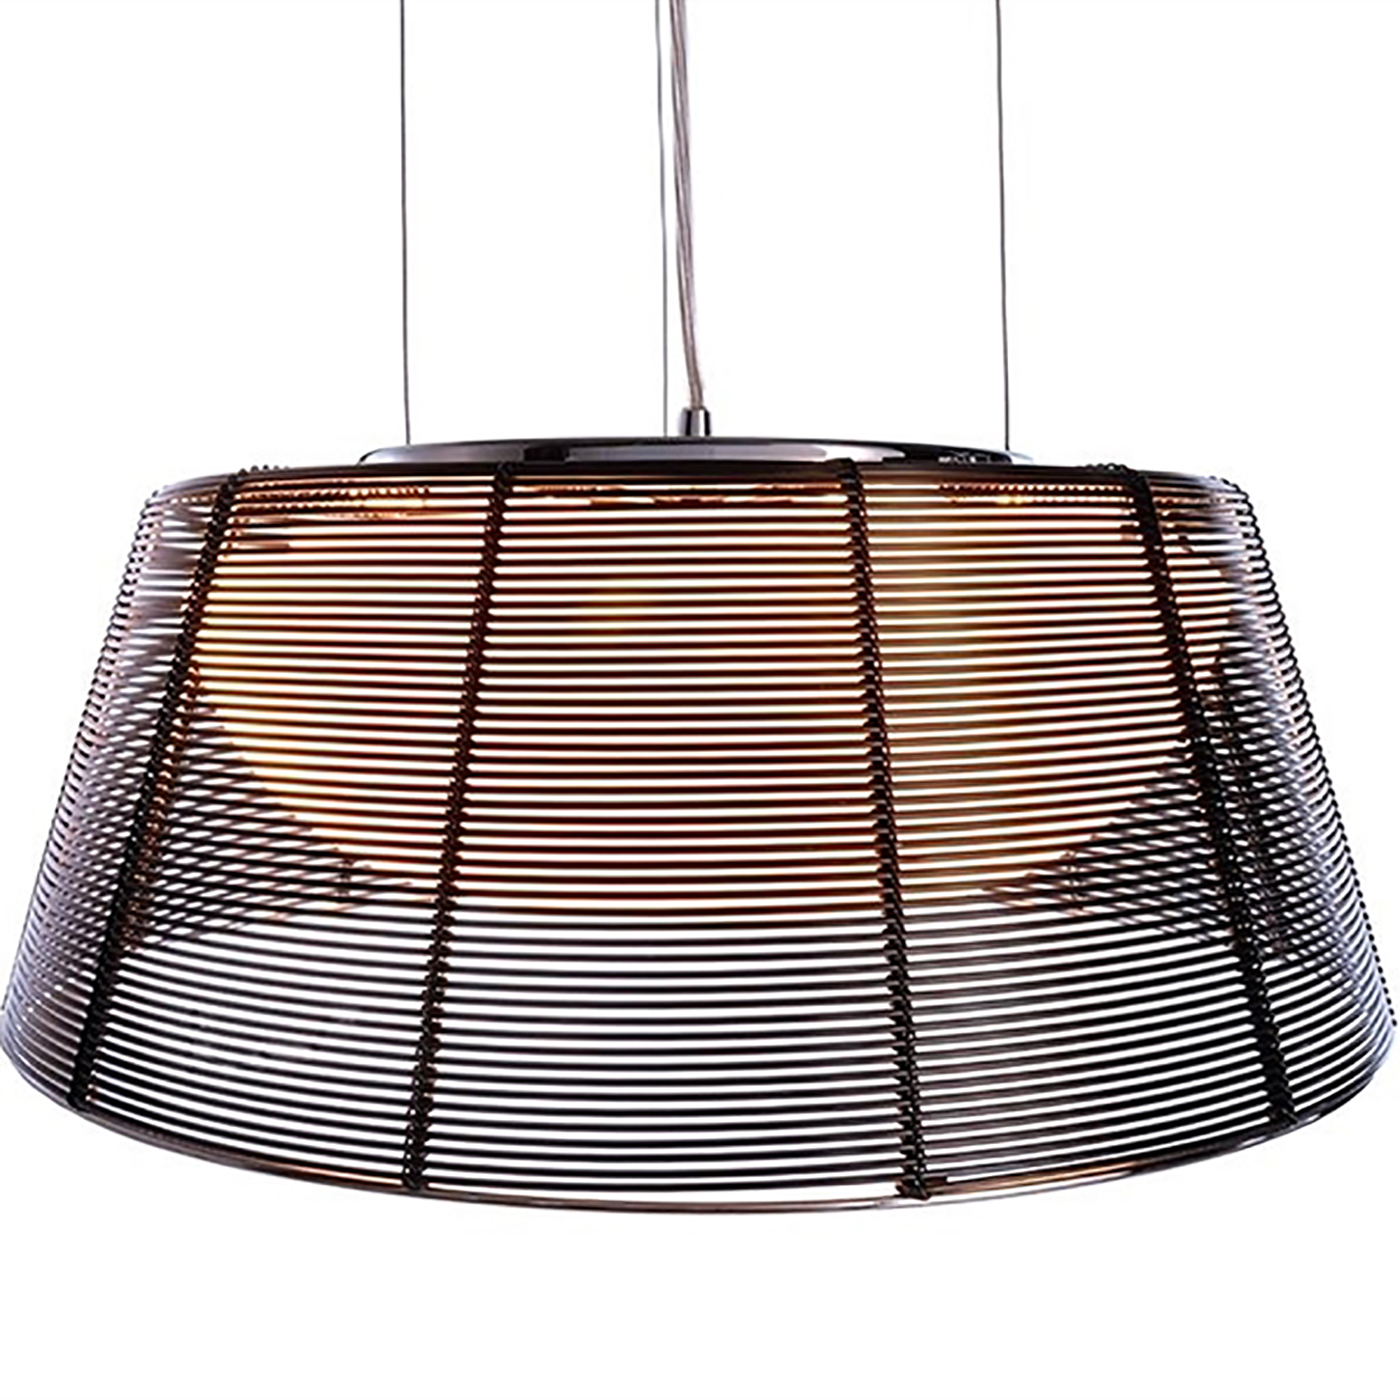 Chandelier metal woven wire pendant suspension LED 3 attacks E27